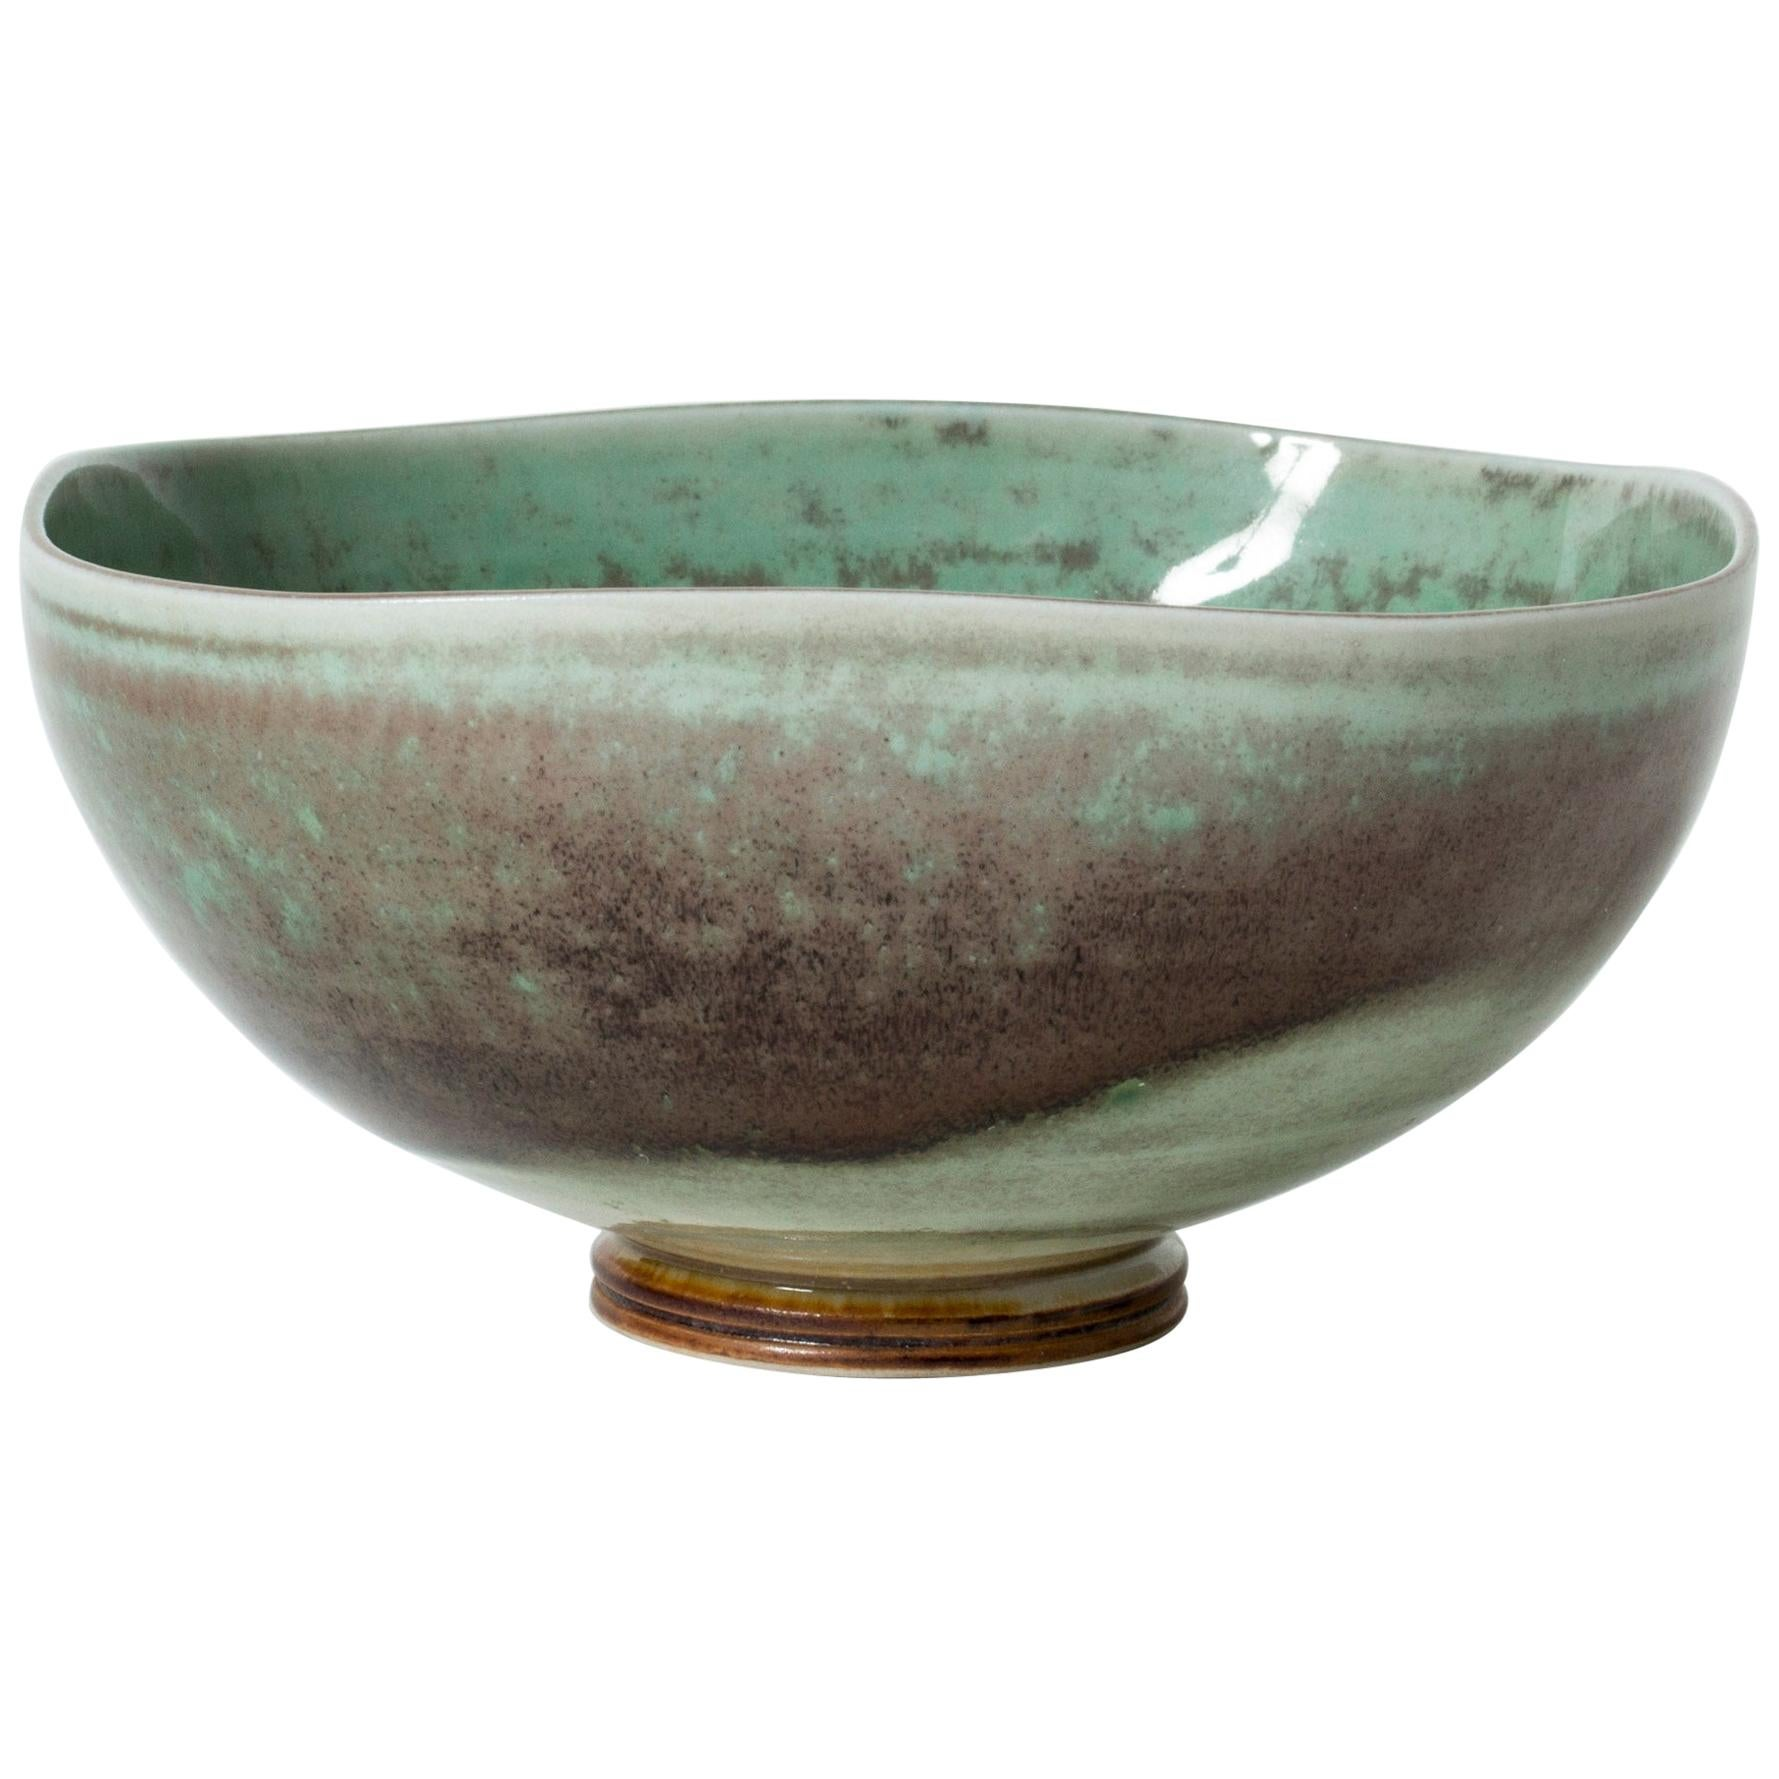 Stoneware Bowl by Berndt Friberg for Gustavsberg, Sweden, 1975